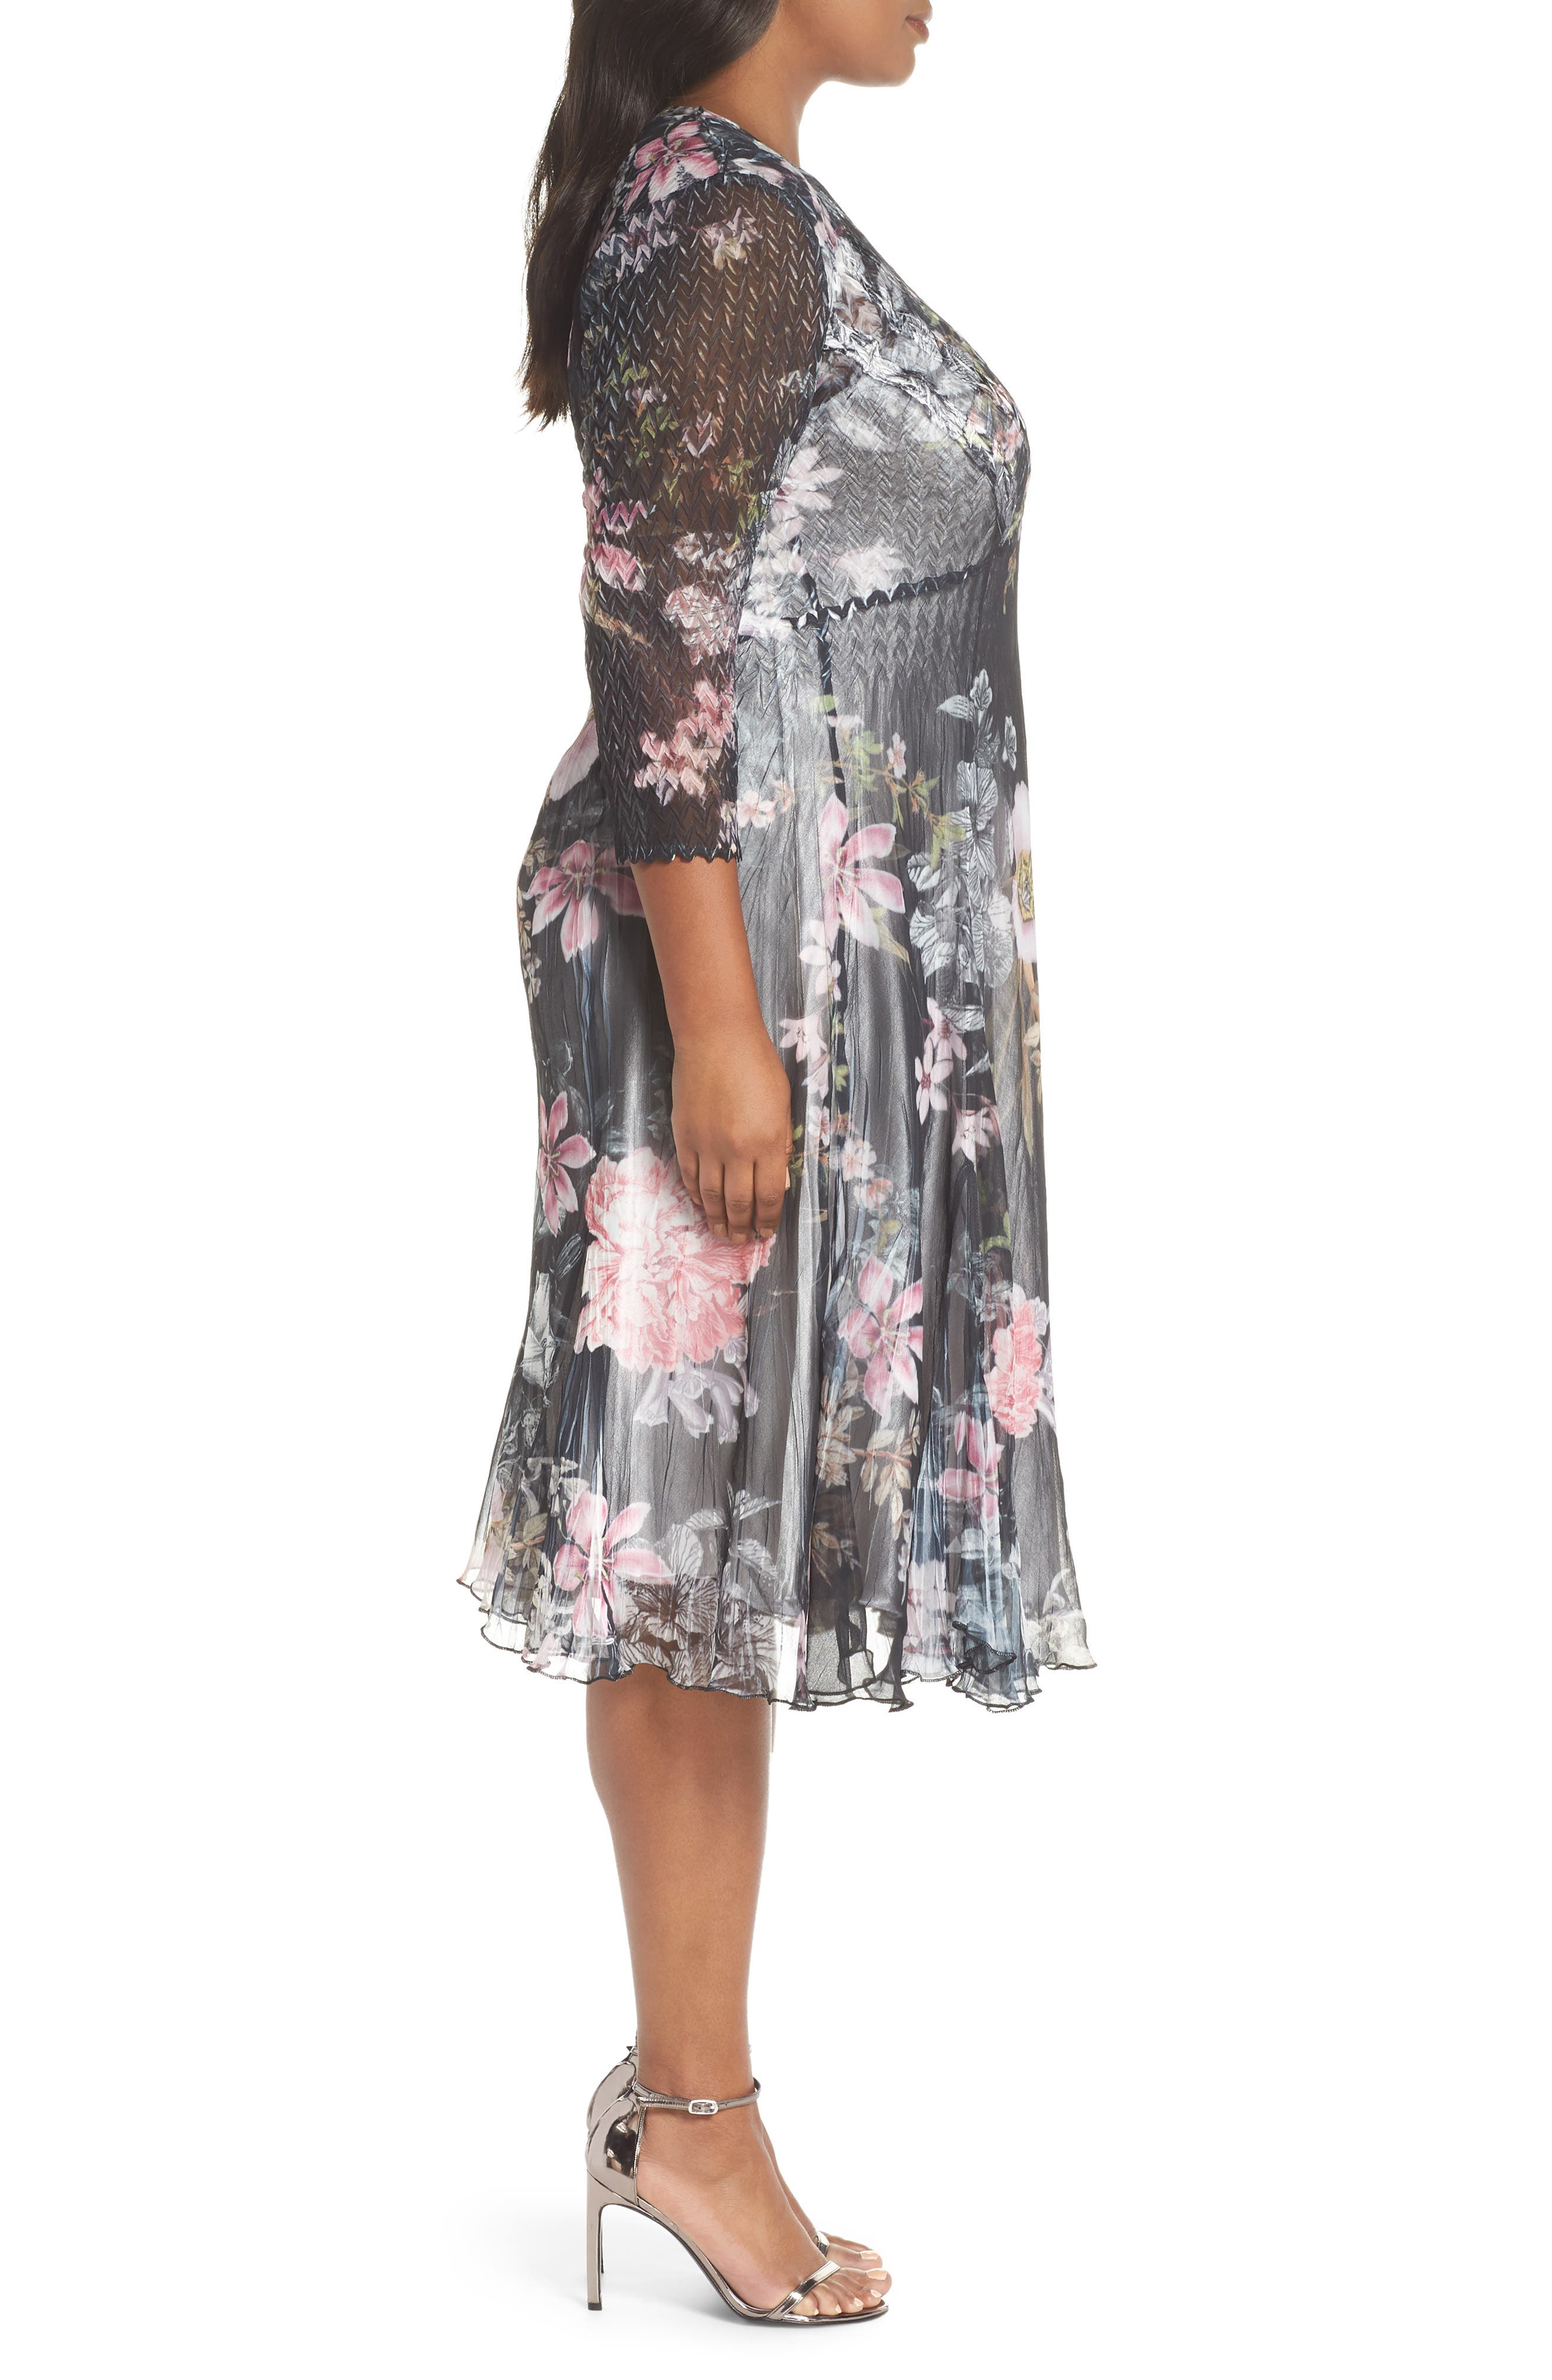 Kamarov Floral Charmeuse & Chiffon Floral A-Line Dress,                             Alternate thumbnail 3, color,                             001